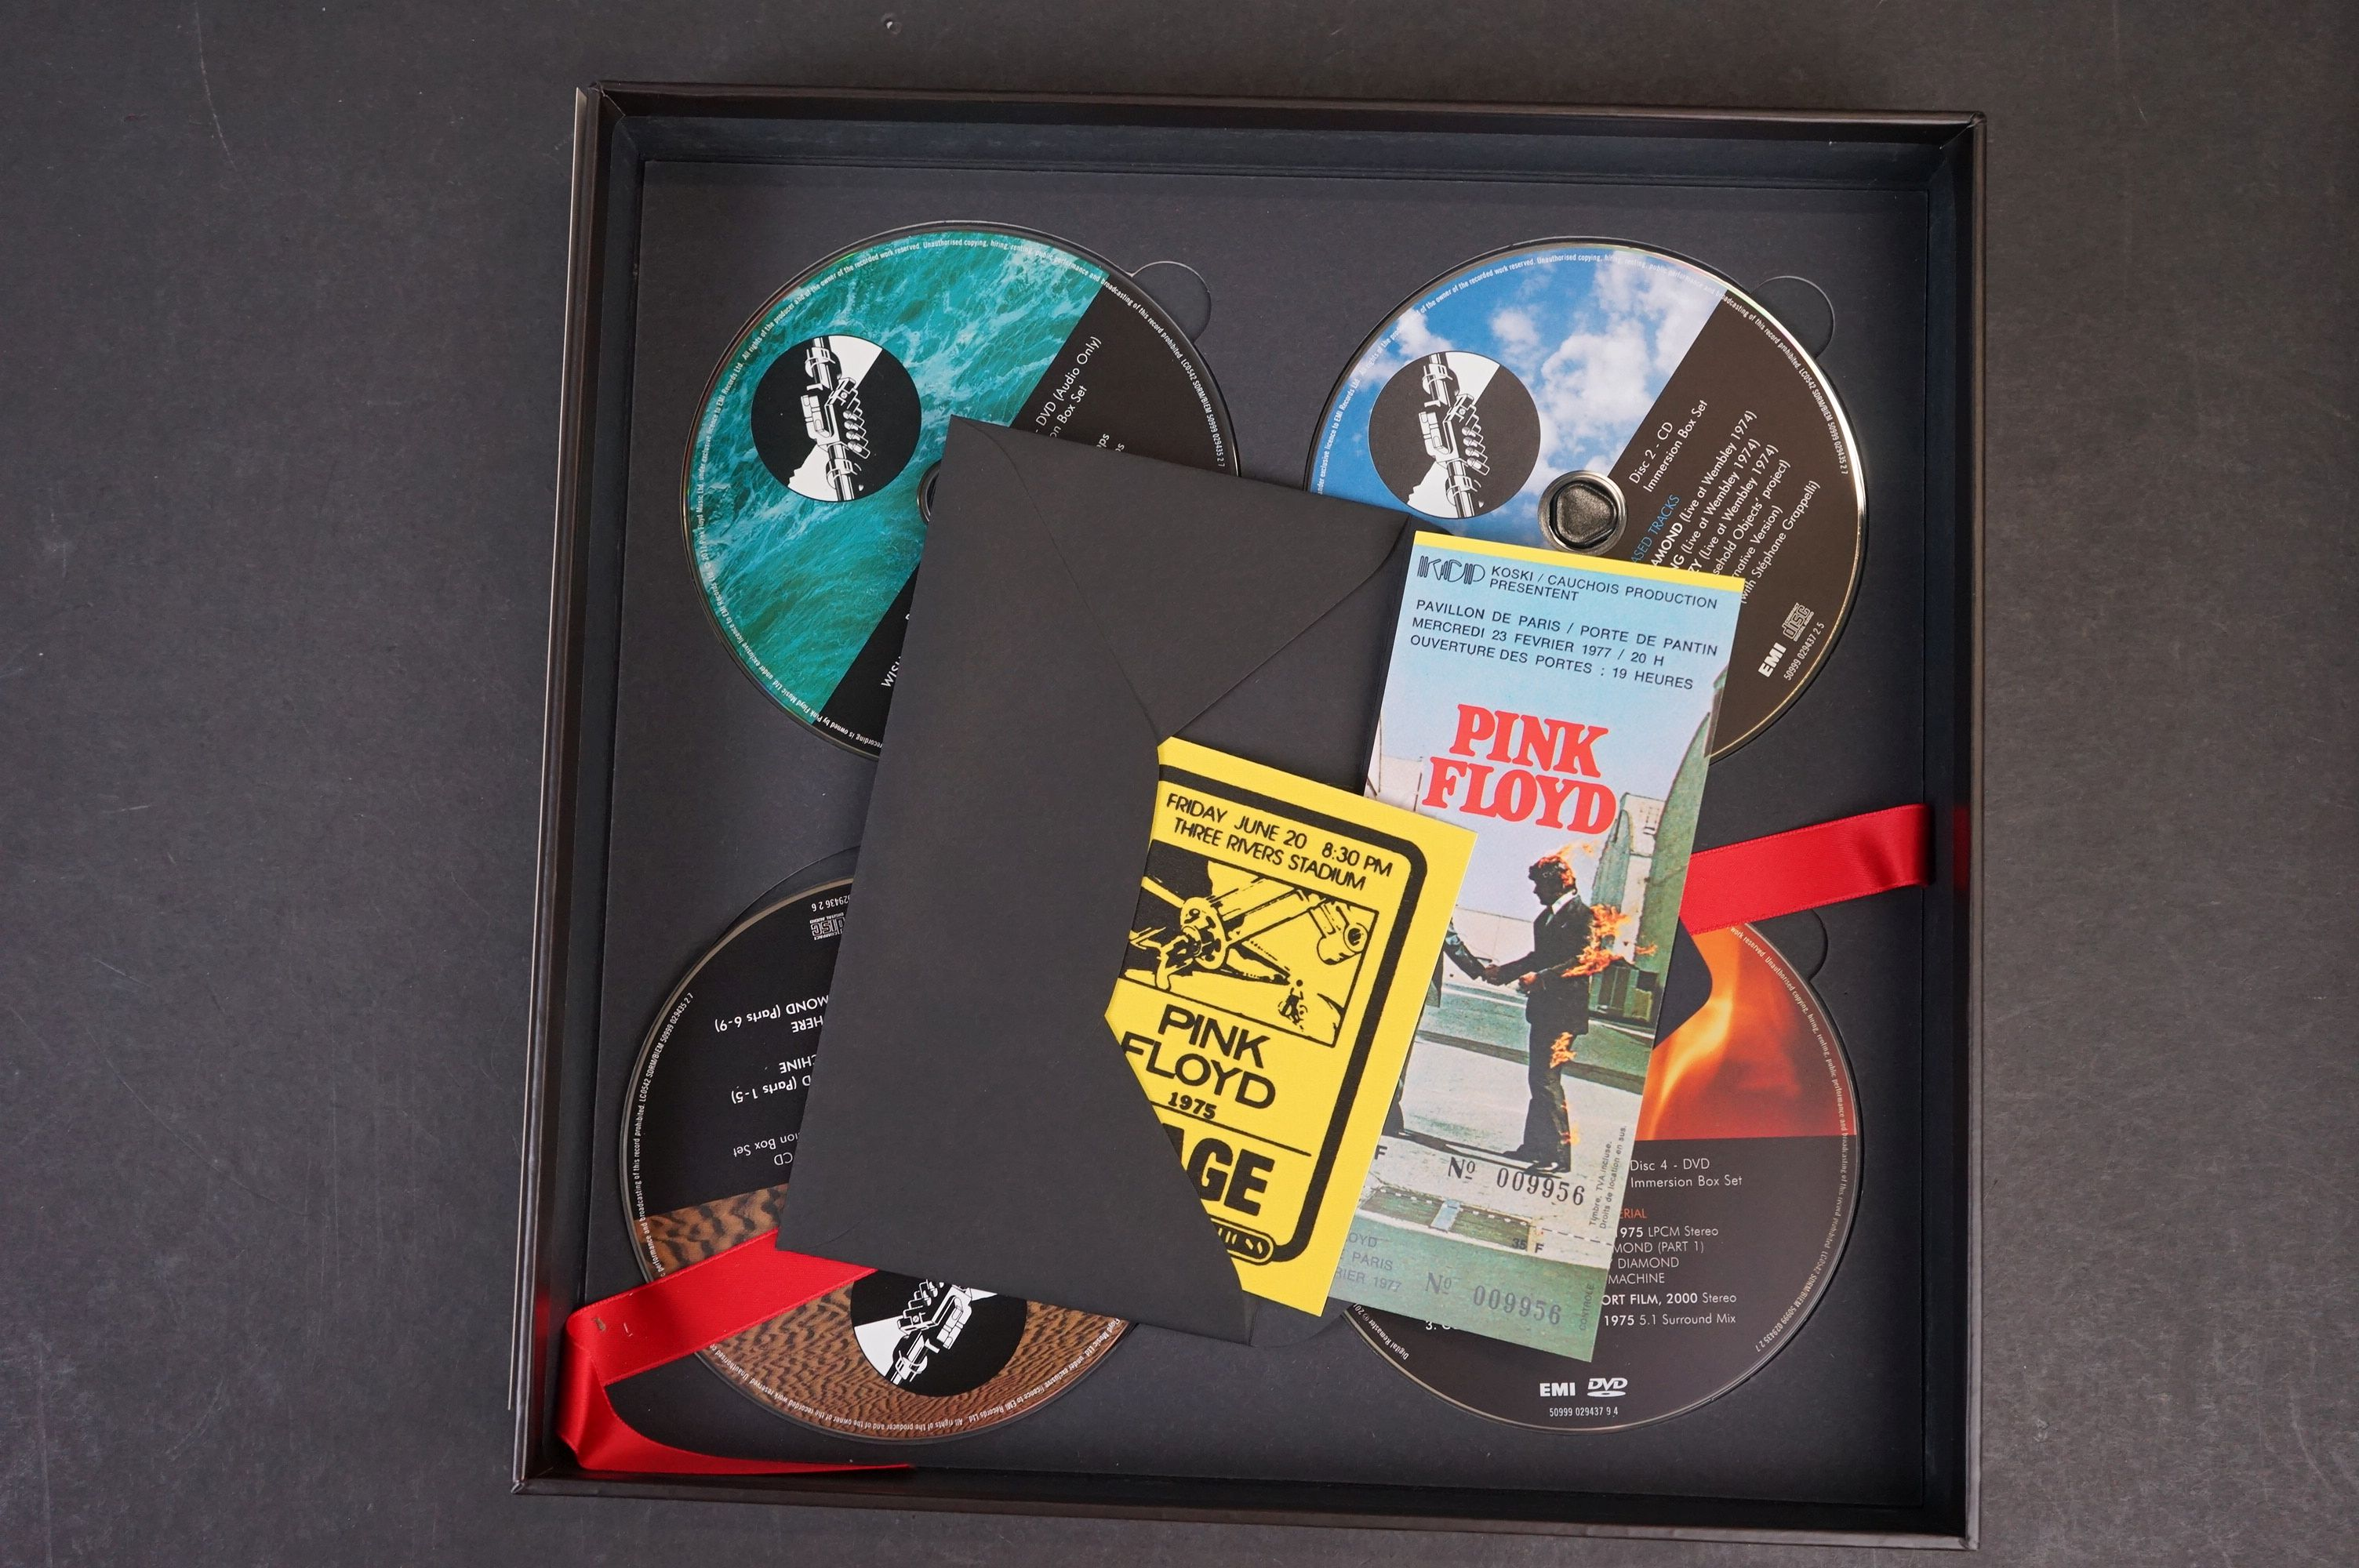 CD / DVD / Bluray - Pink Floyd Wish You Were Here 5 disc box set ex - Image 9 of 13